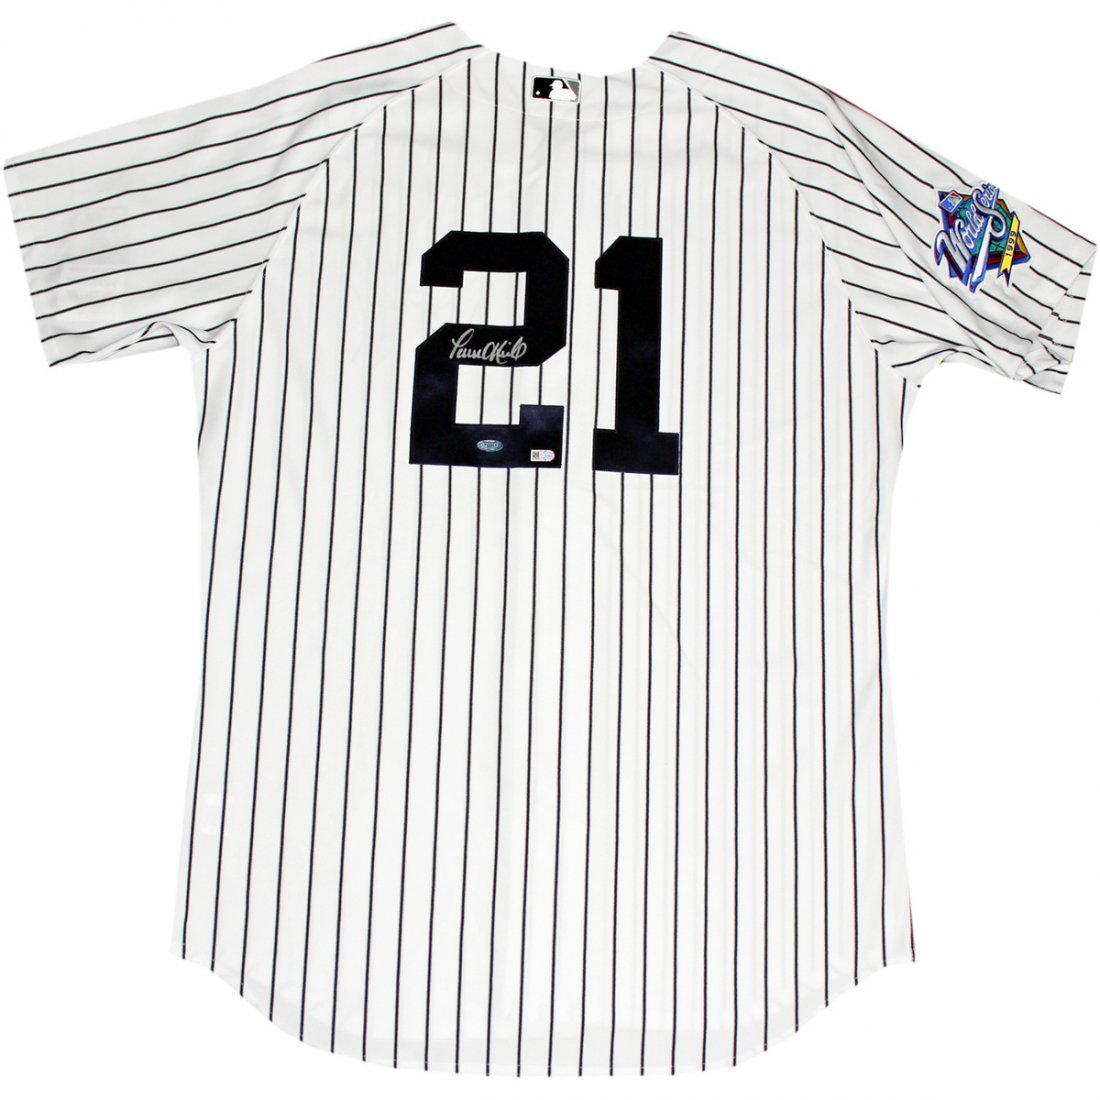 Paul O'Neill Signed New York Yankees Authentic Pinstrip